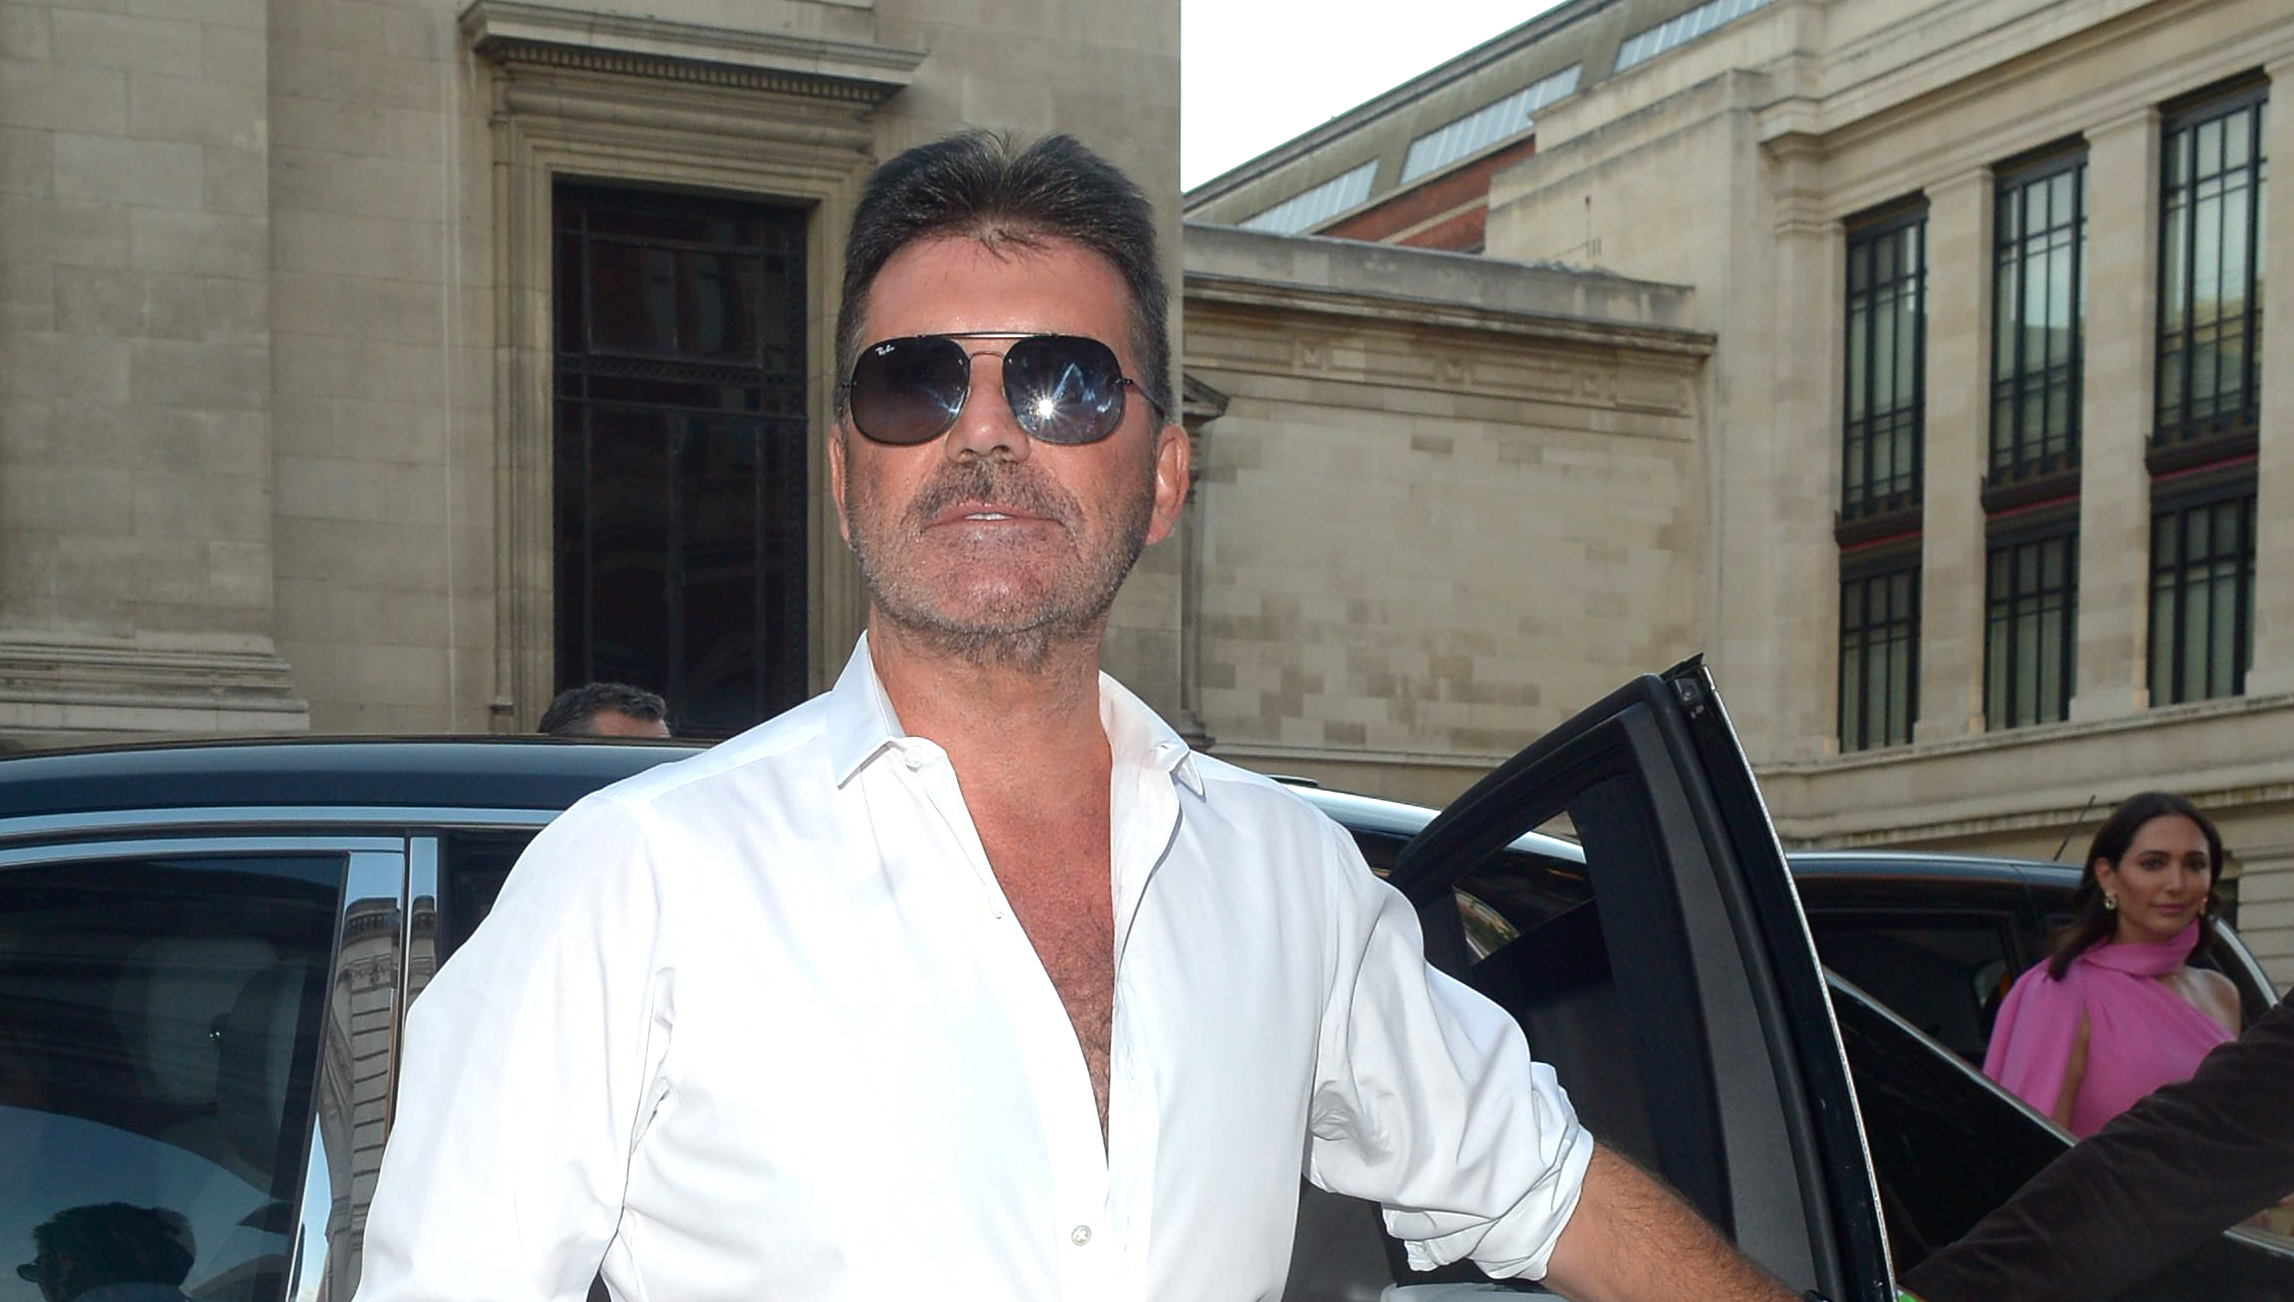 Simon Cowell unrecognisable as he appears to have lost more weight